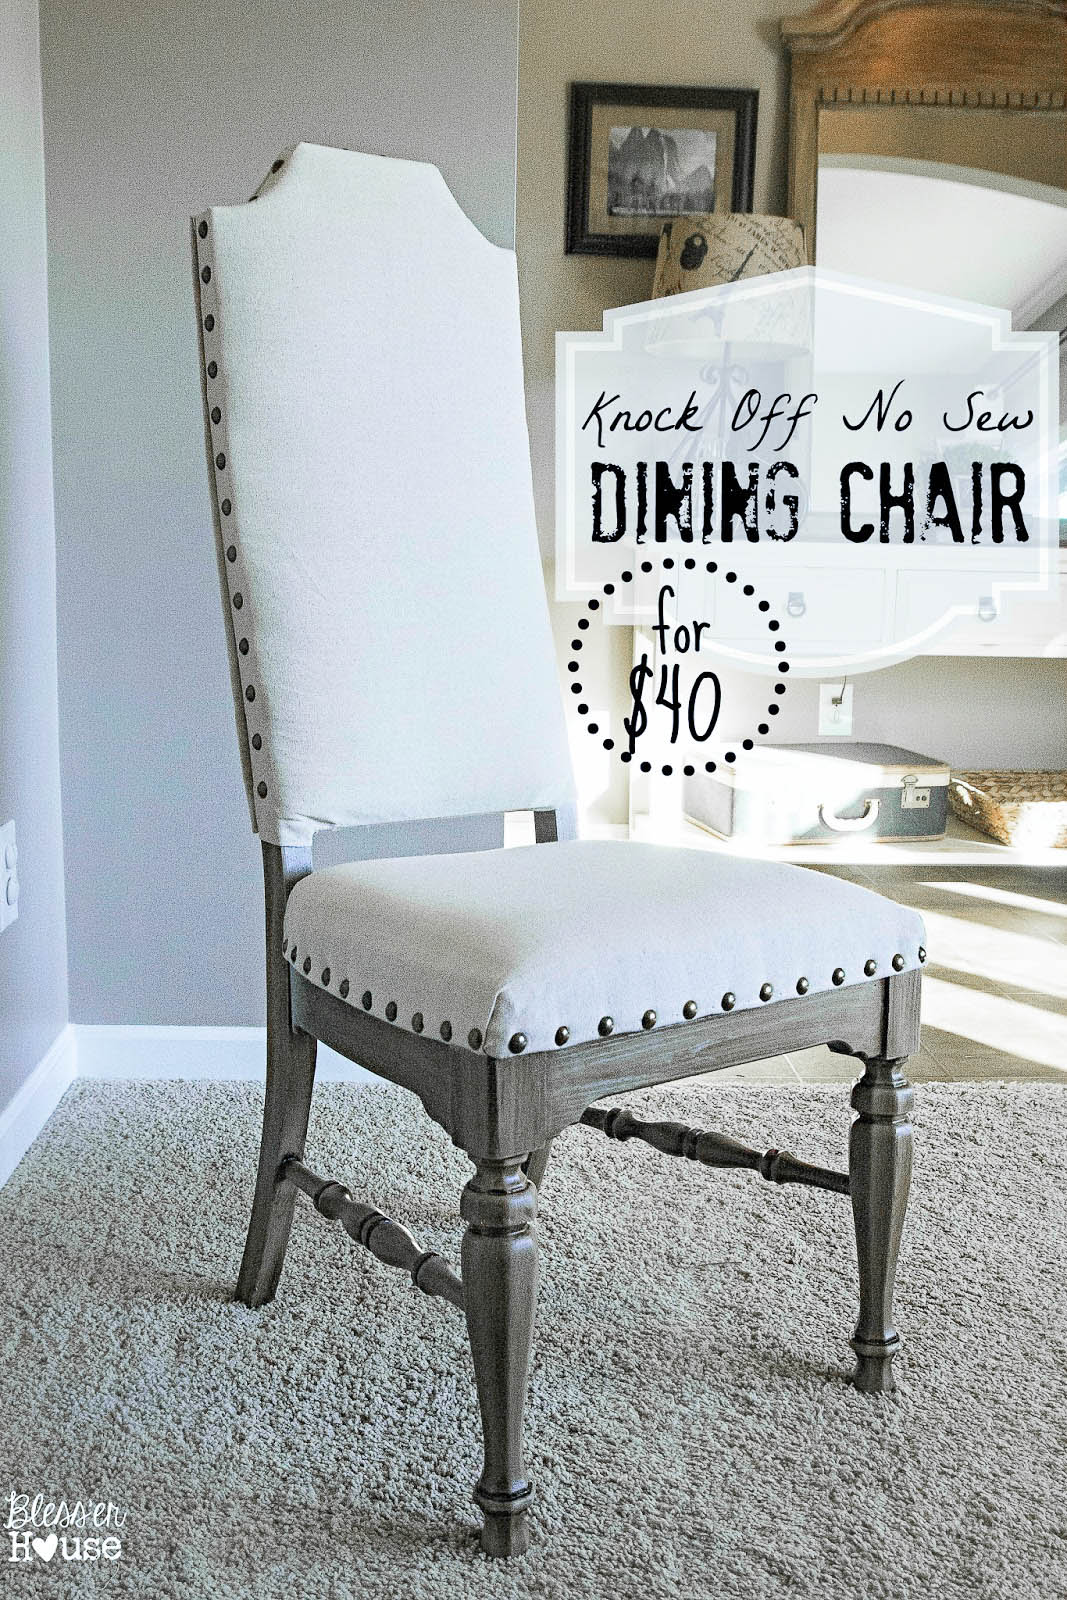 diy dining chairs makeover graco swing chair zebra knock off no sew bless 39er house